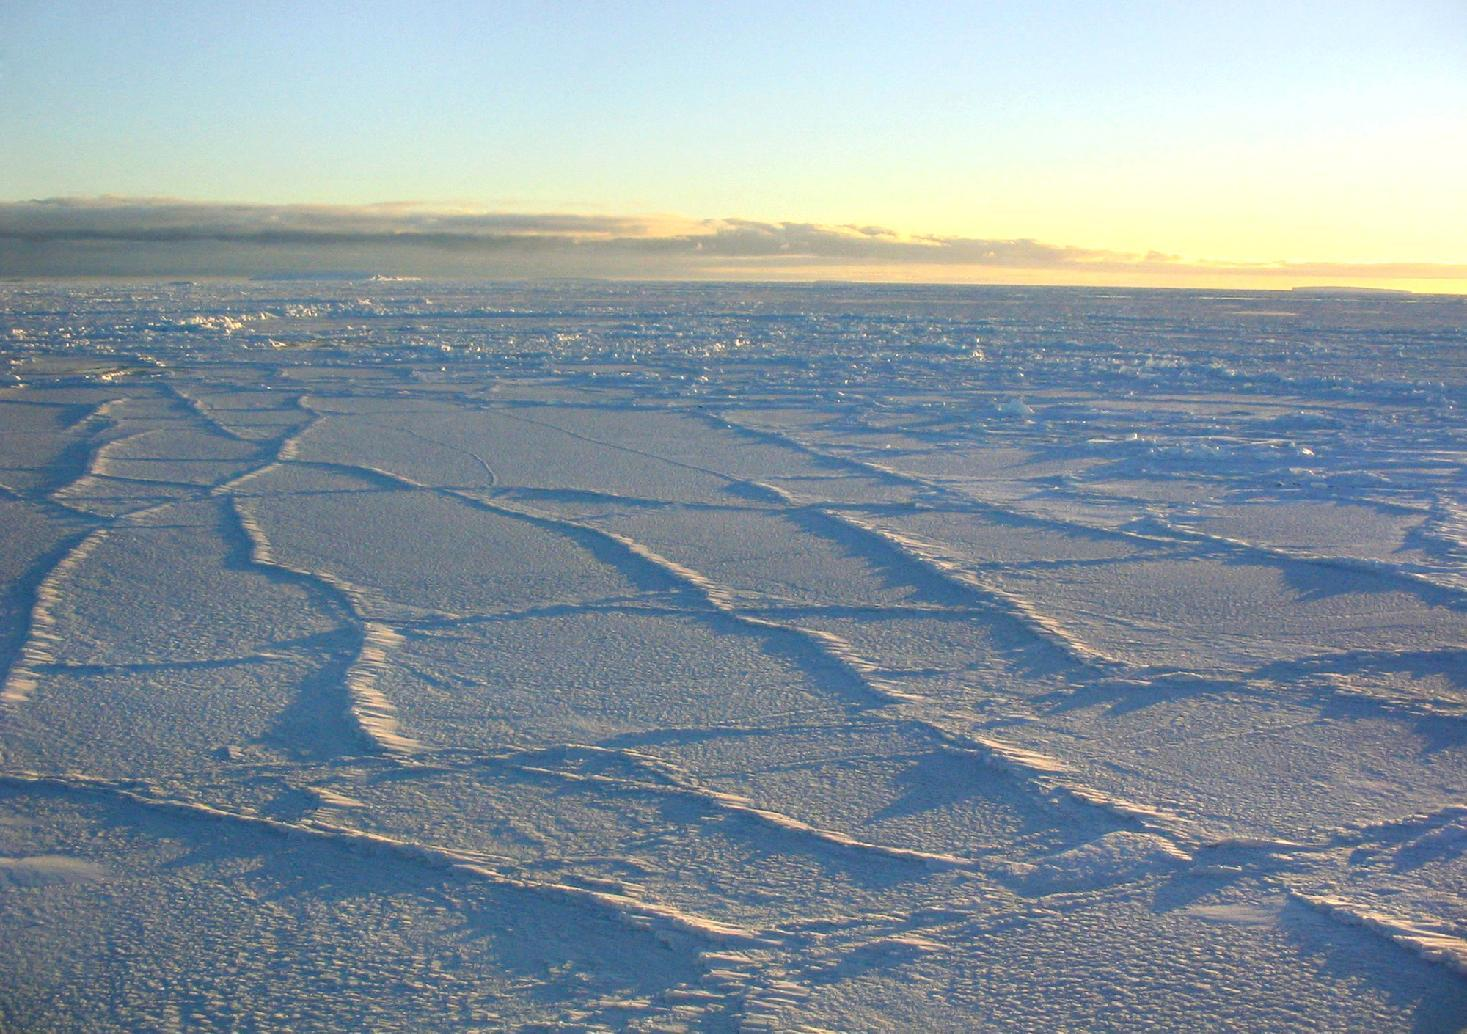 This handout photo provided by NSIDC, University of Colorado, taken in Oct. 2003, shows the Antarctic sunlight illuminating the surface of the sea ice, intensifying the effect of the fracture lines. The ice goes on seemingly forever in a white pancake-flat landscape, stretching so far it just set a record. And yet in this confounding region of the world, that spreading ice may be a cock-eyed signal of man-made climate change, scientists say. (AP Photo/NSIDC, University of Colorado)